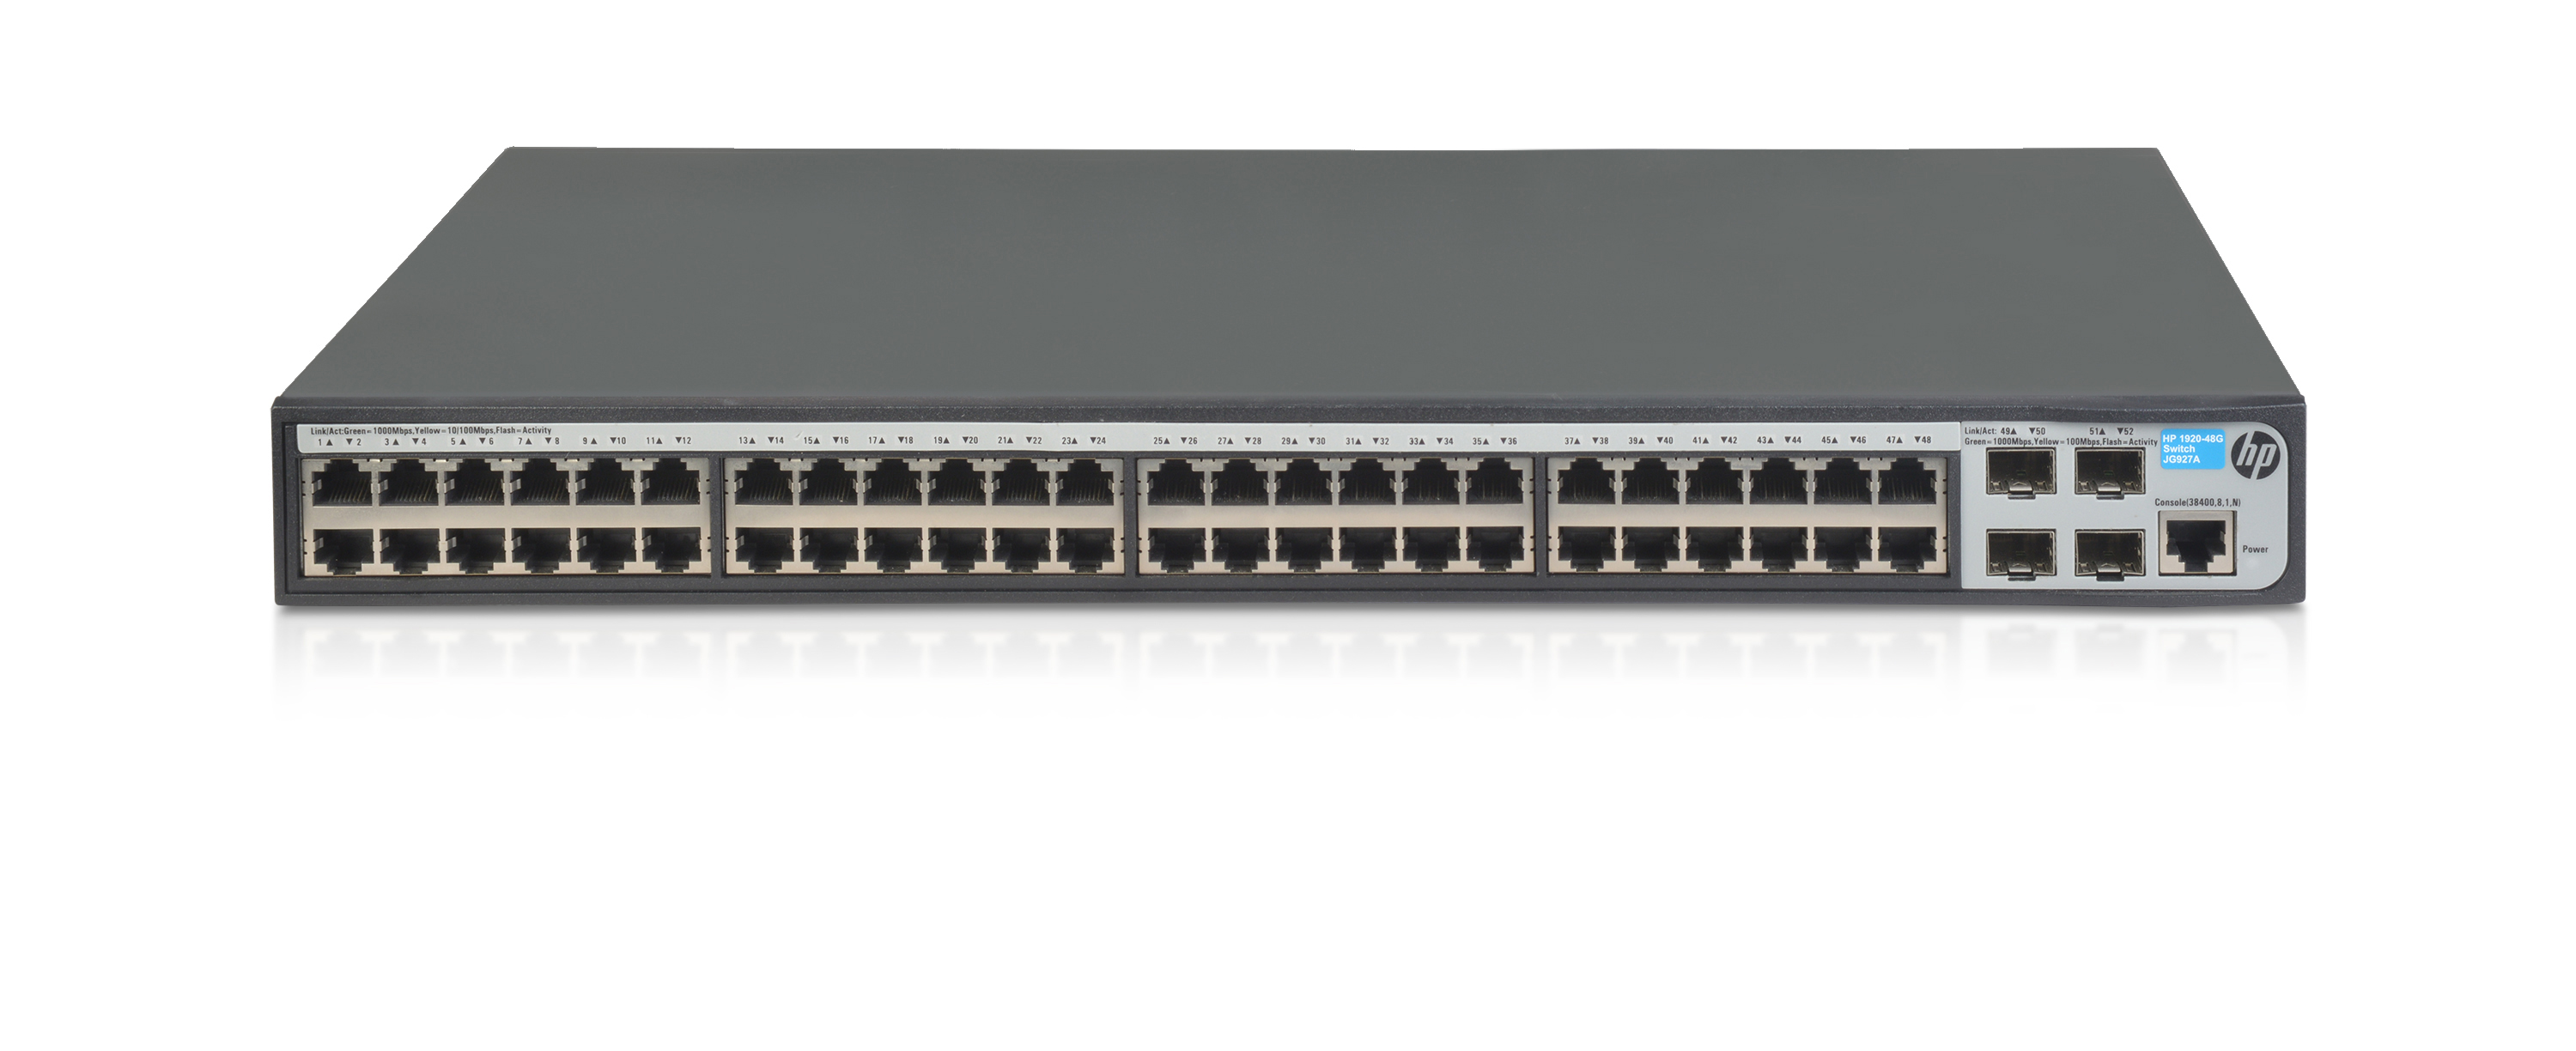 HPE 1920 48G Switch